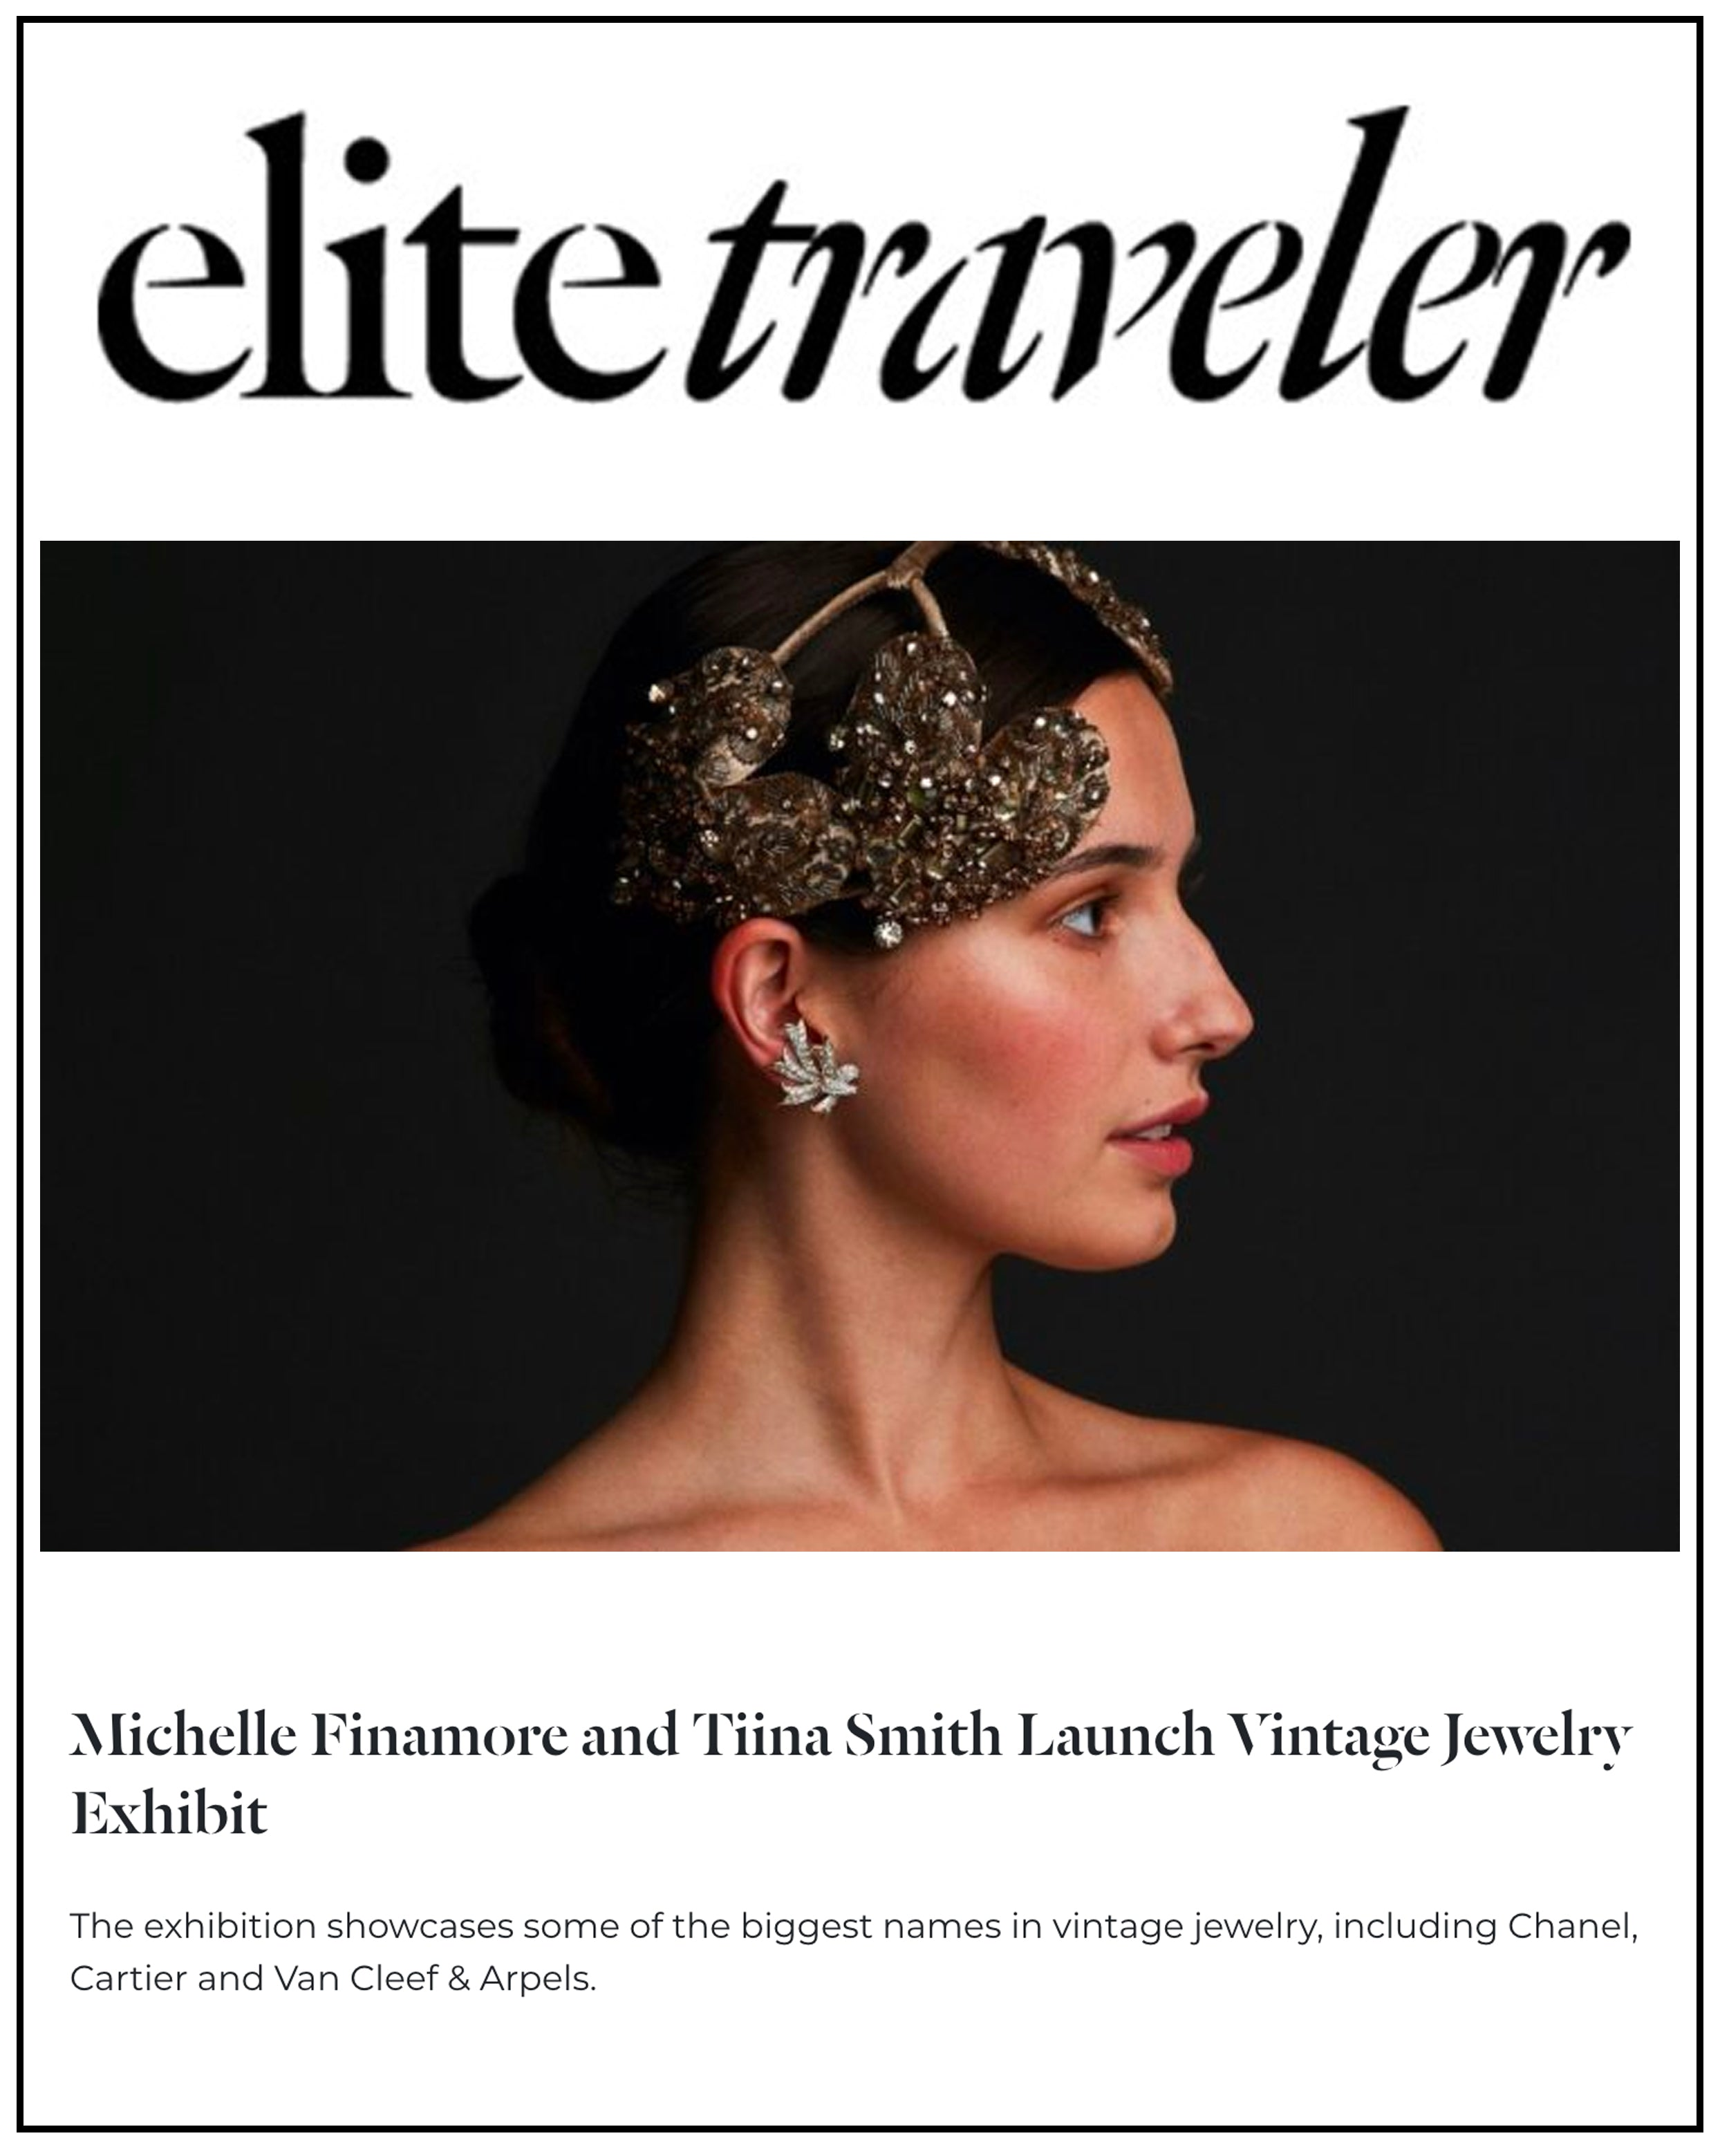 https://www.elitetraveler.com/shopping-lifestyle/jewelry/michelle-finamore-and-tiina-smith-launch-vintage-jewelry-exhibit